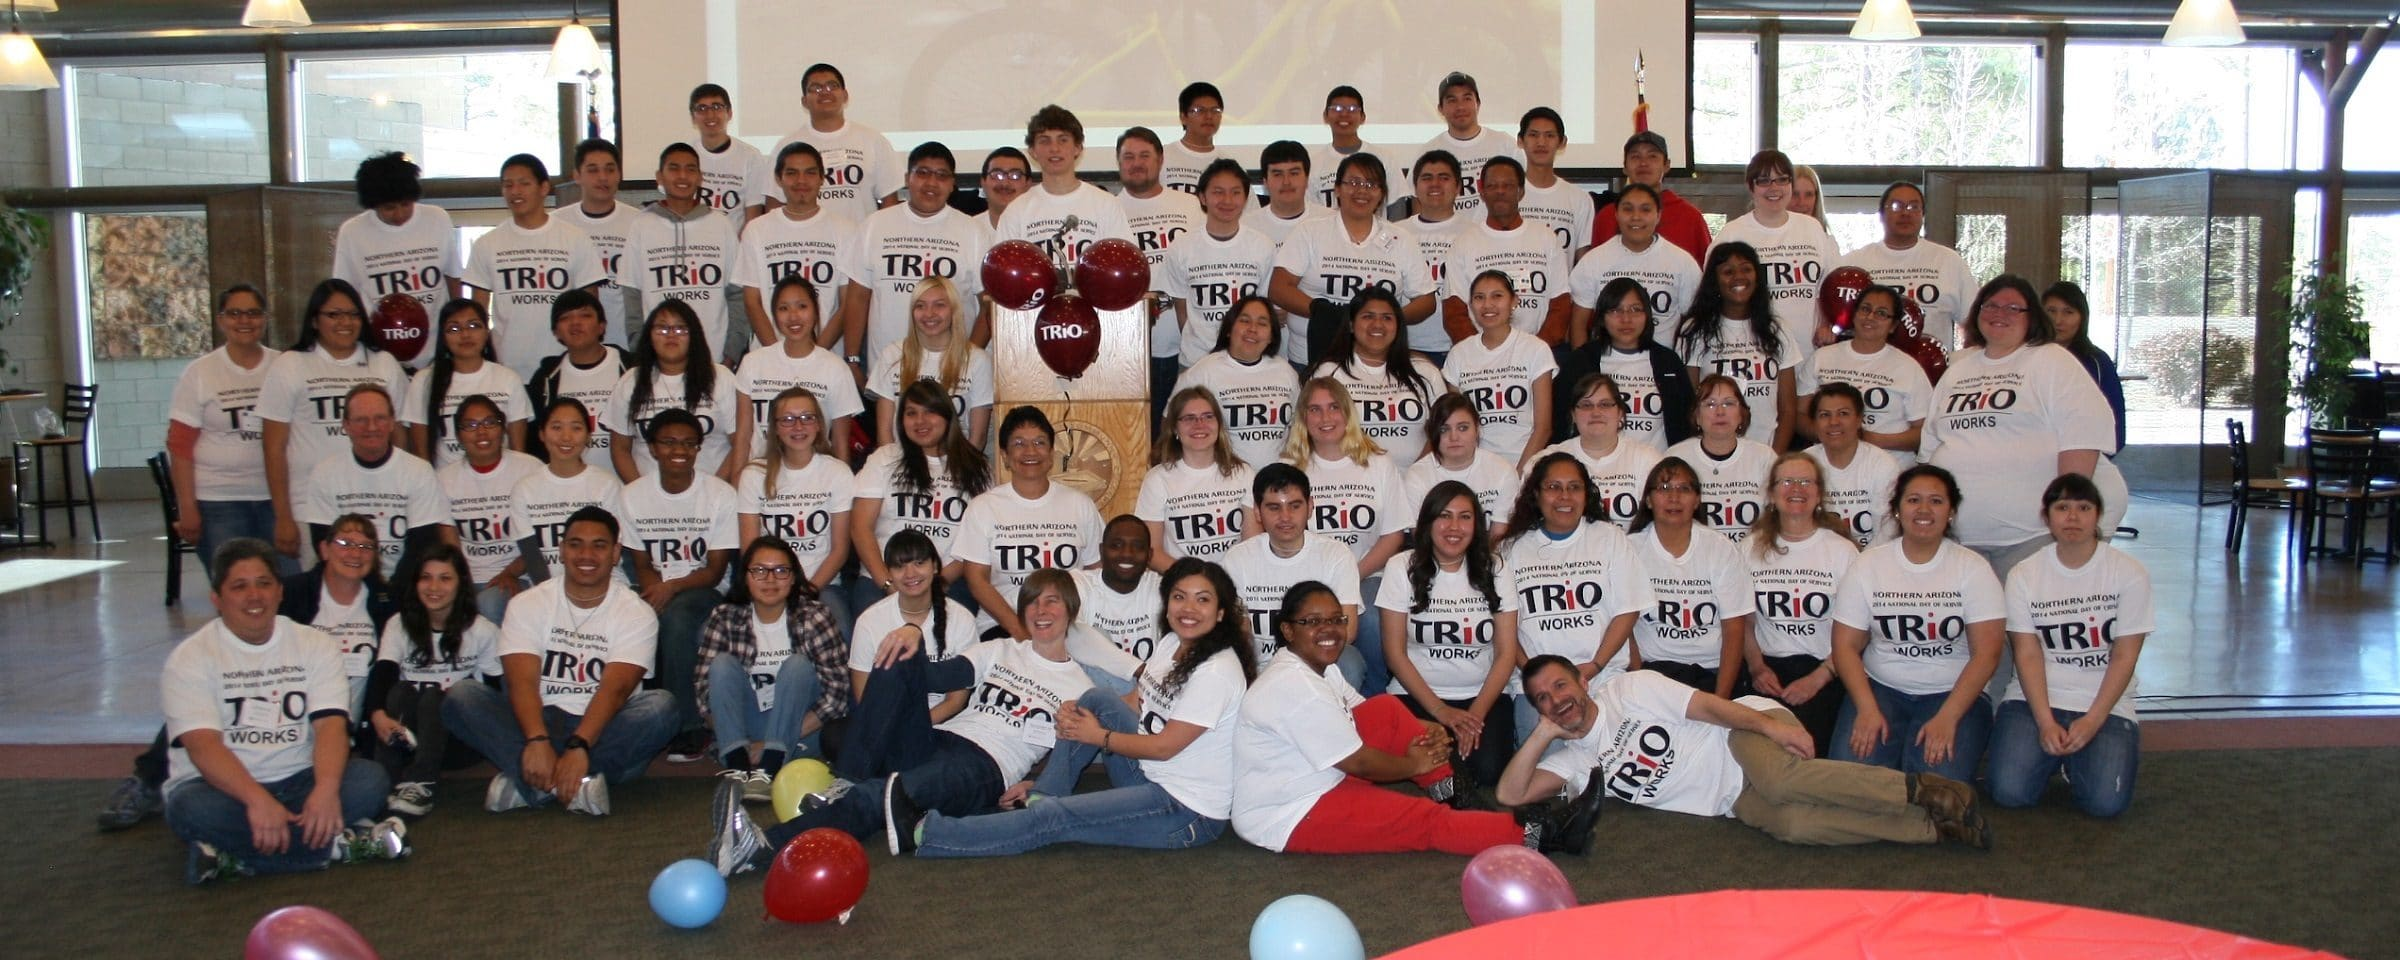 NAU SSS participants at trio day